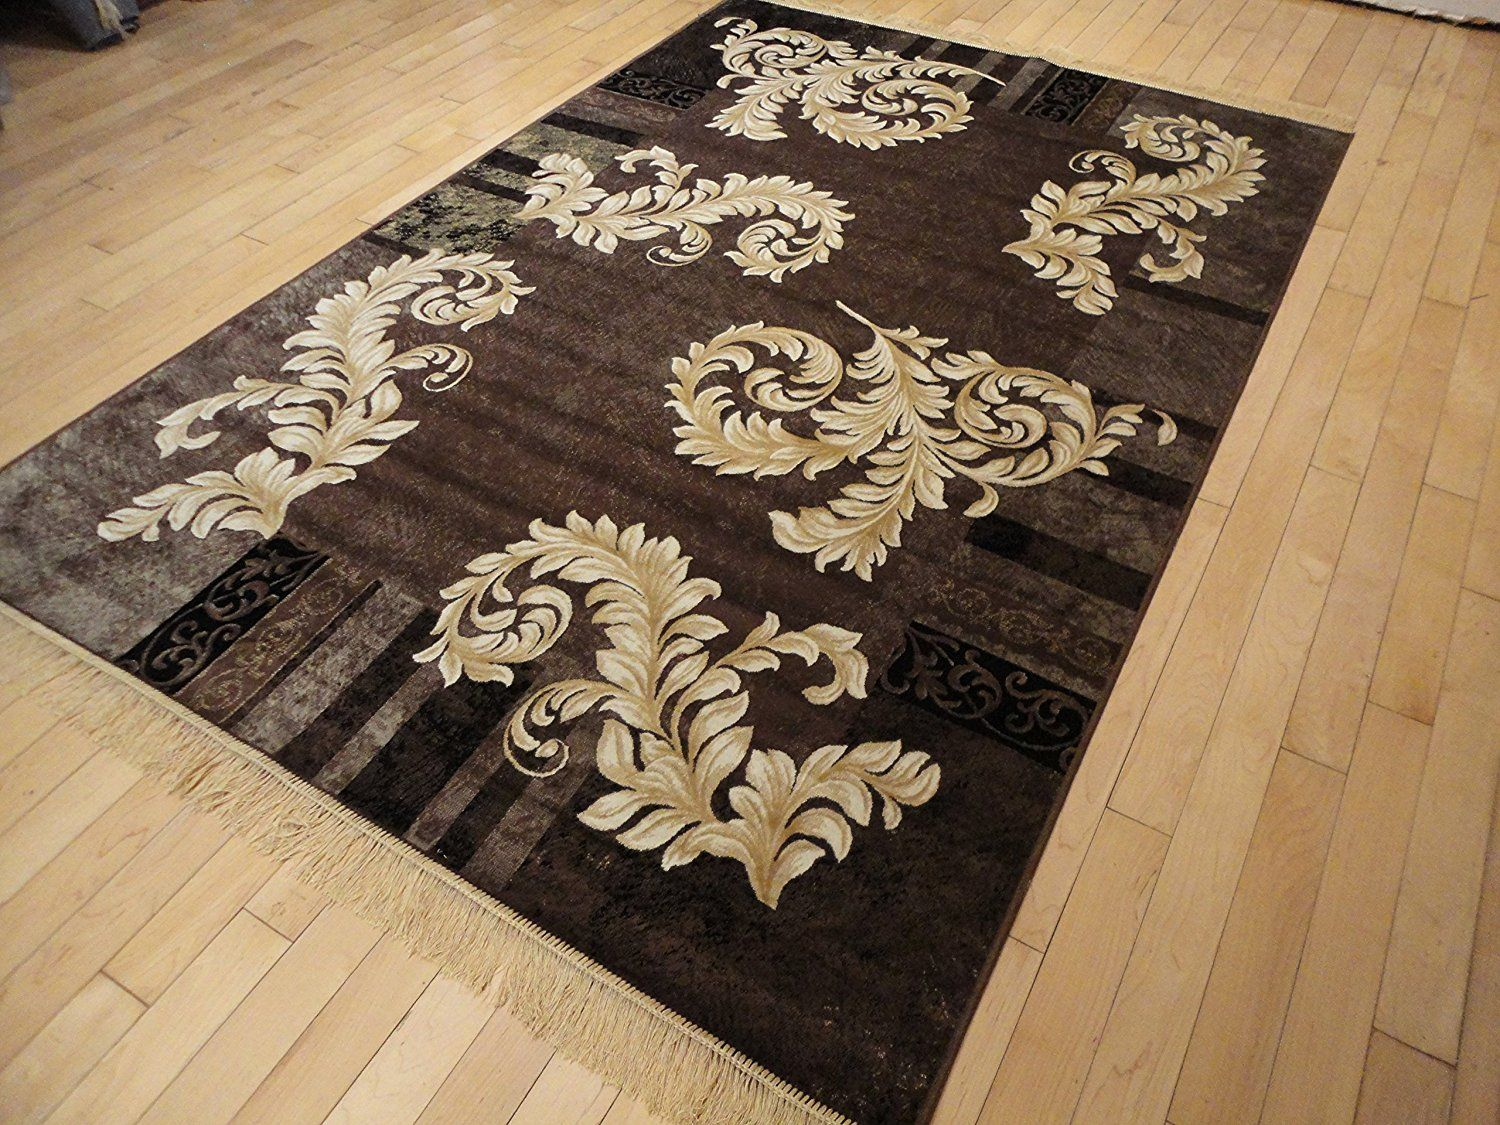 Silk Brown Ice Area Rugs Modern Rug Dining Room Black Cream Gold Clearance Under 100 Dont Get Left Behind